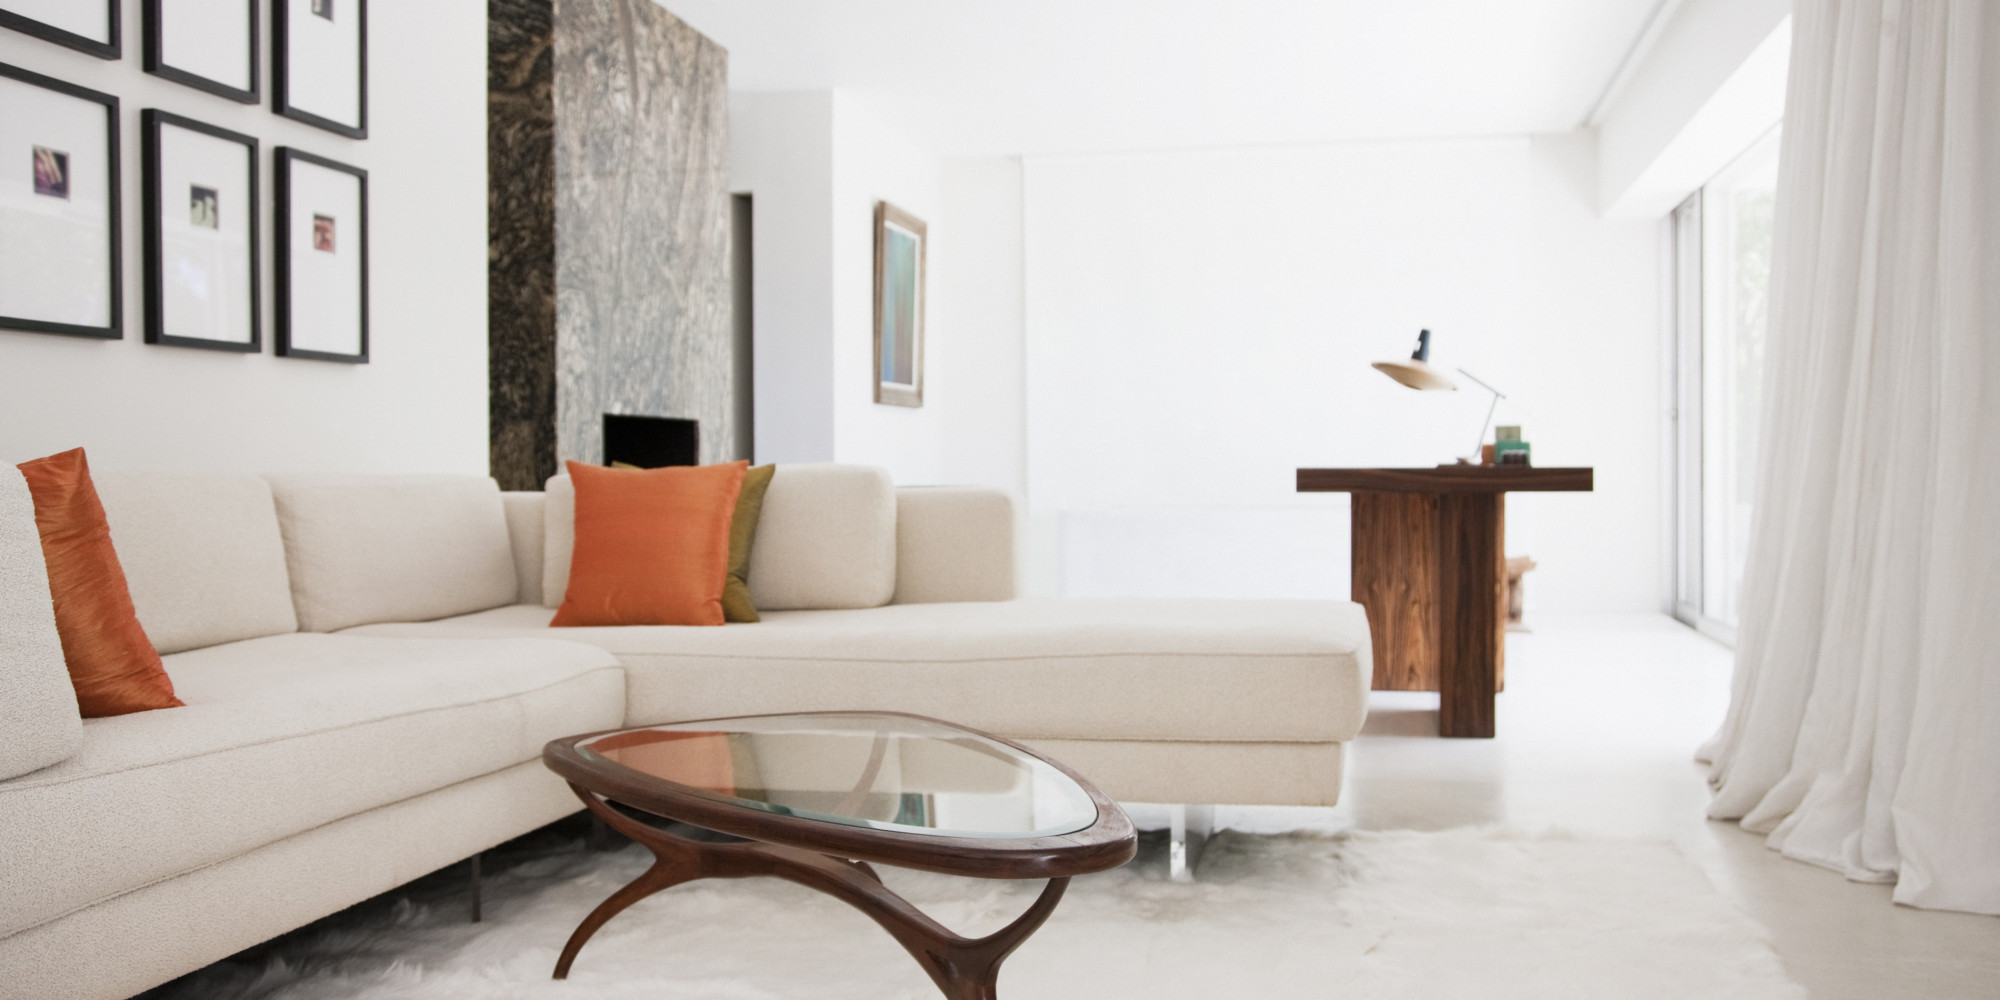 home time furniture furniture 4 home time4gadget awesome 6 ways to properly arrange furniture and make your room look more